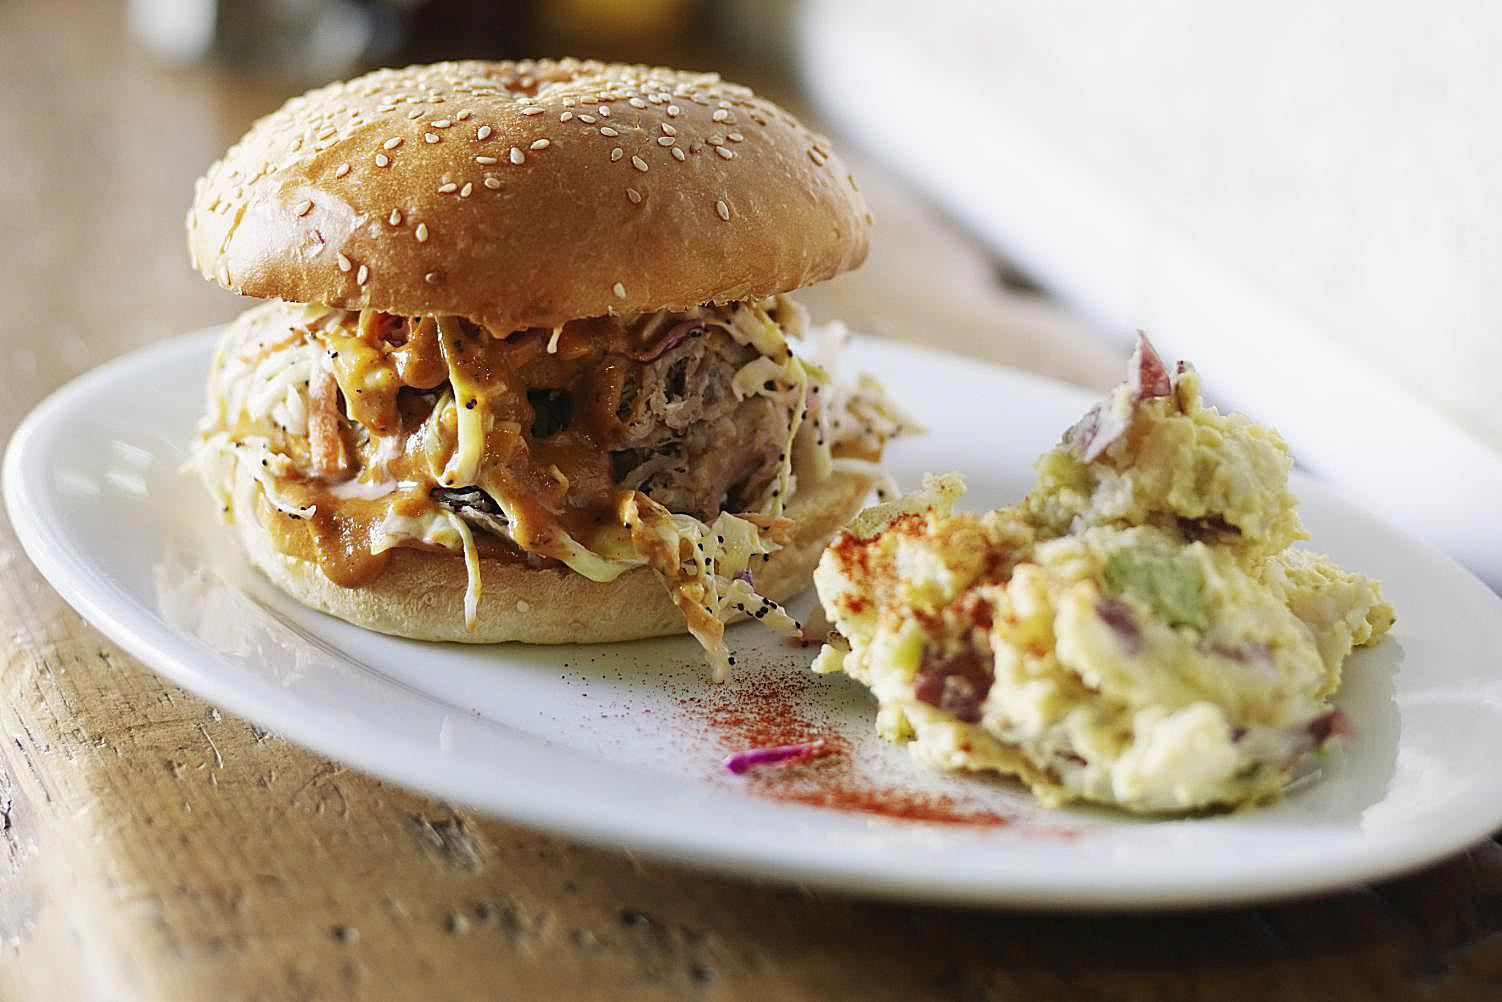 Pulled pork sandwich served with coleslaw